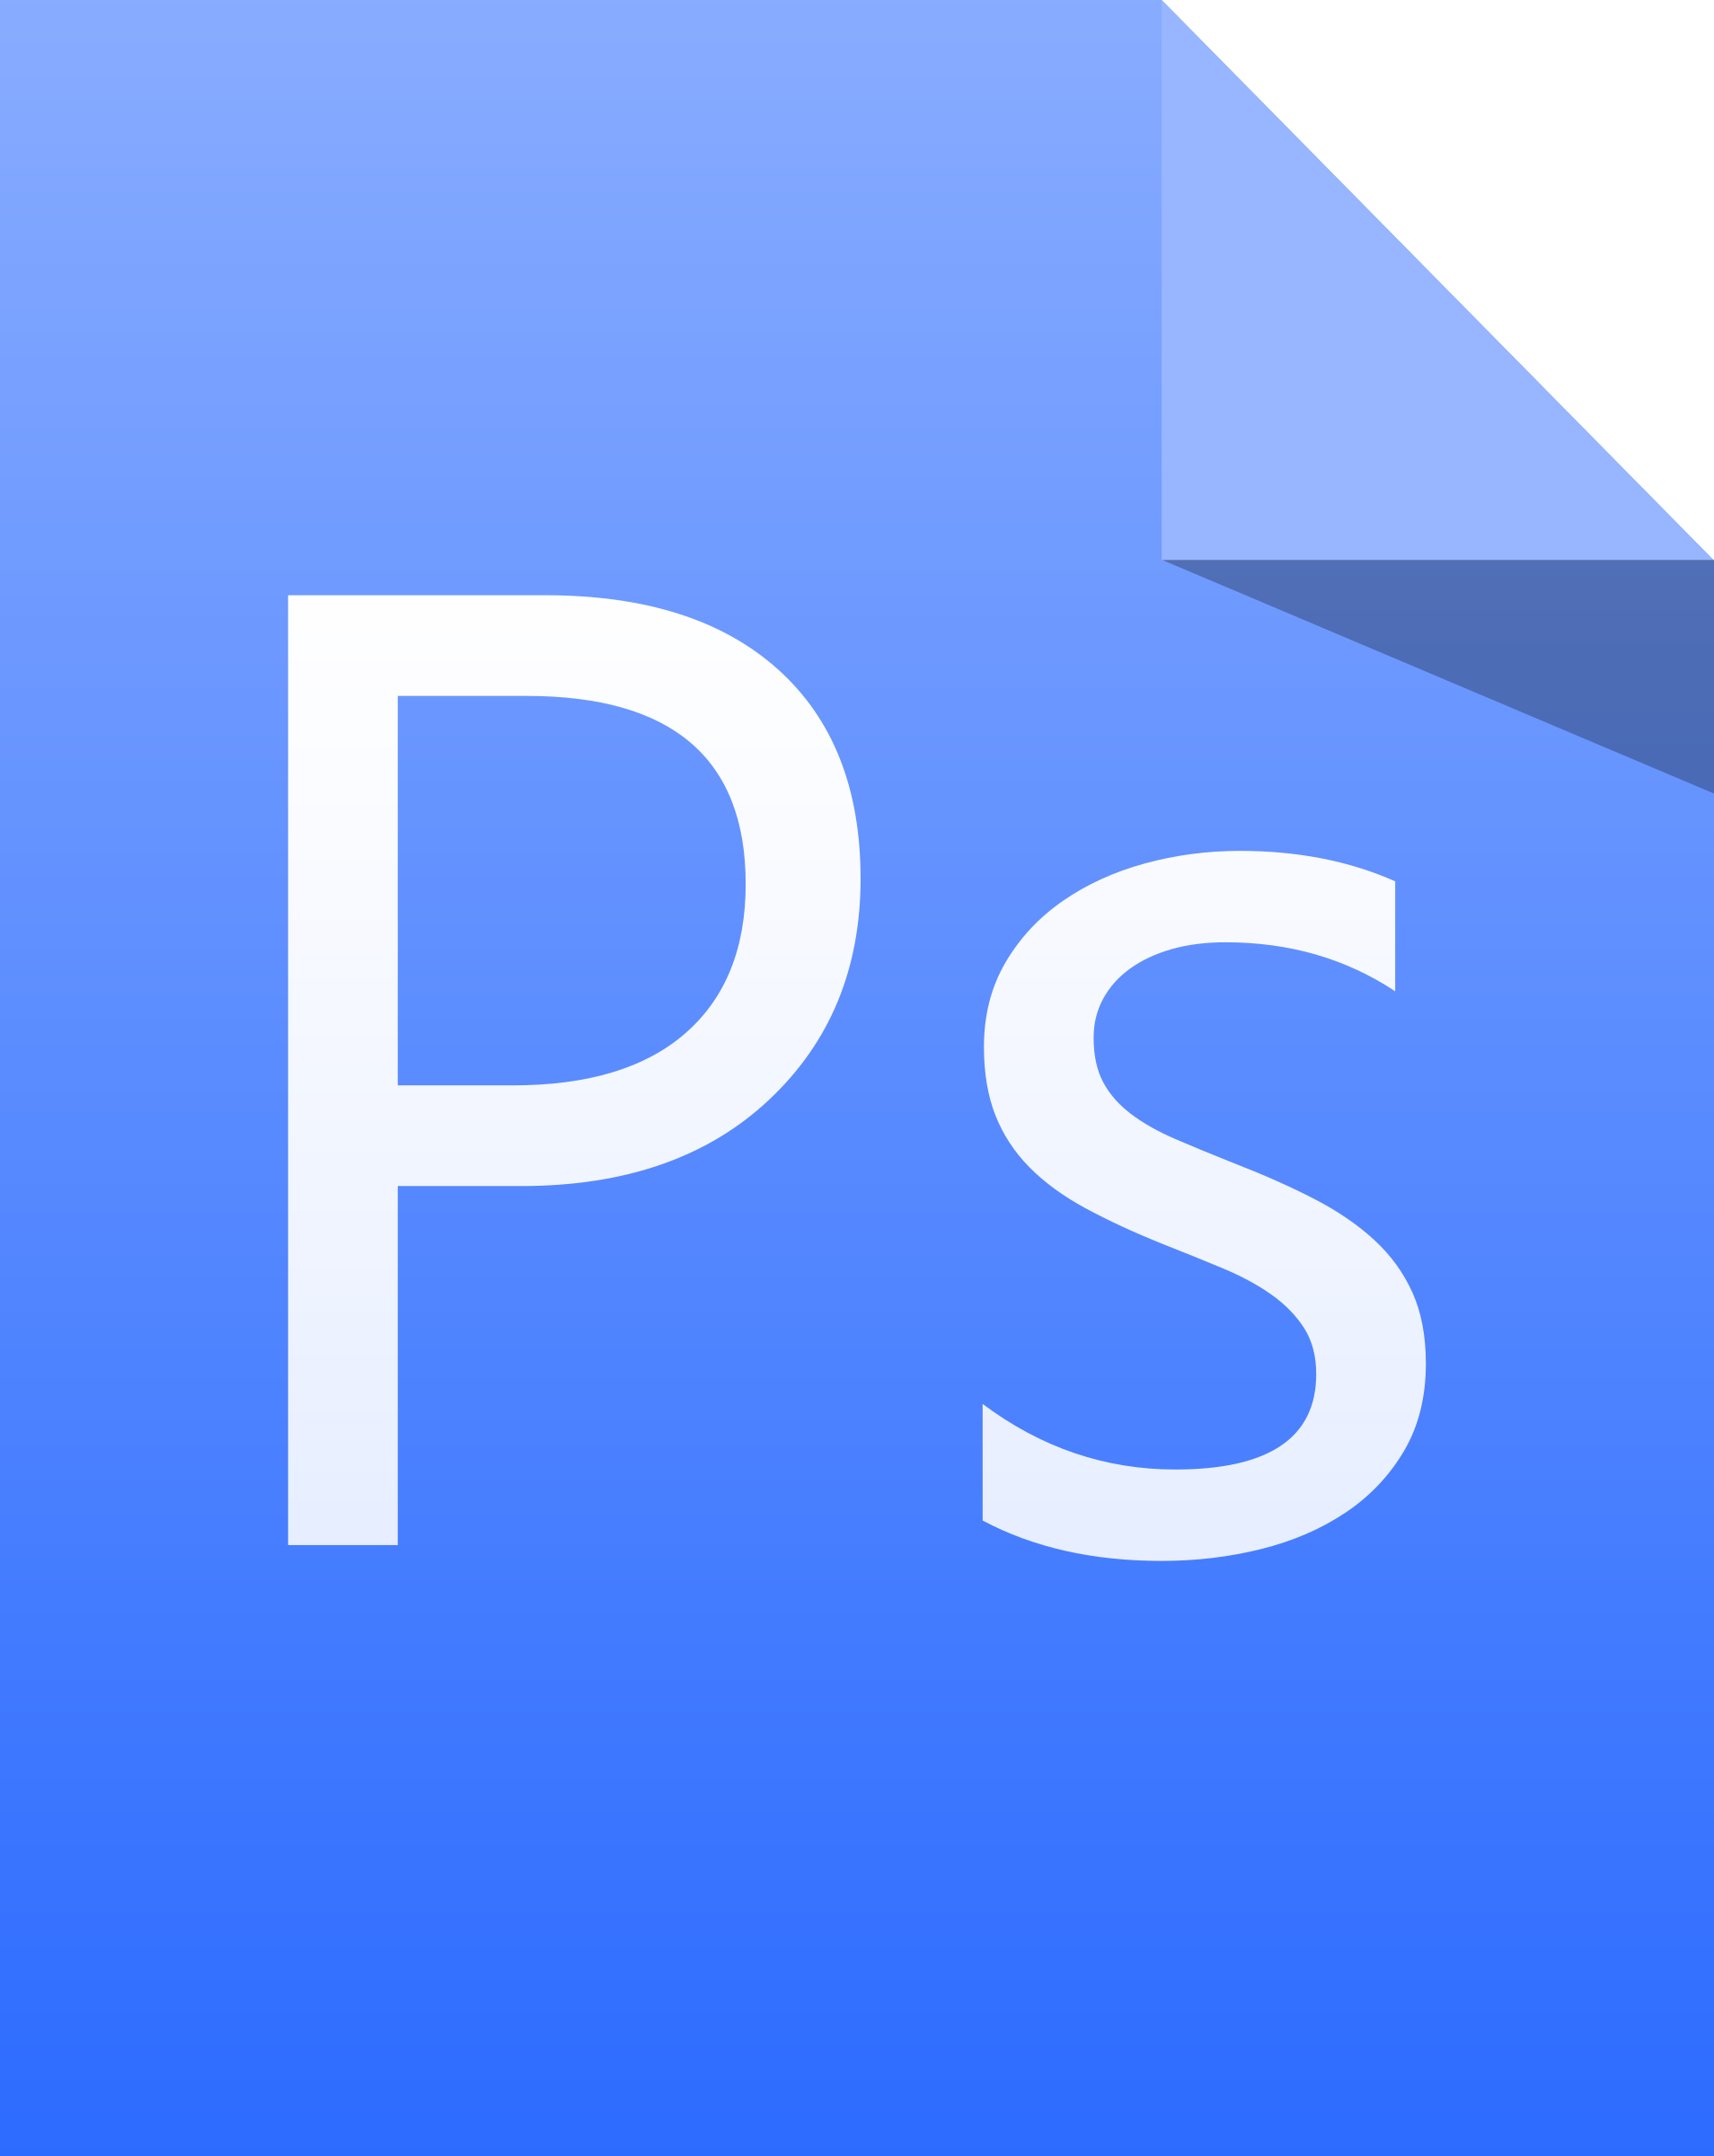 Adobe Photoshop Design By Miror